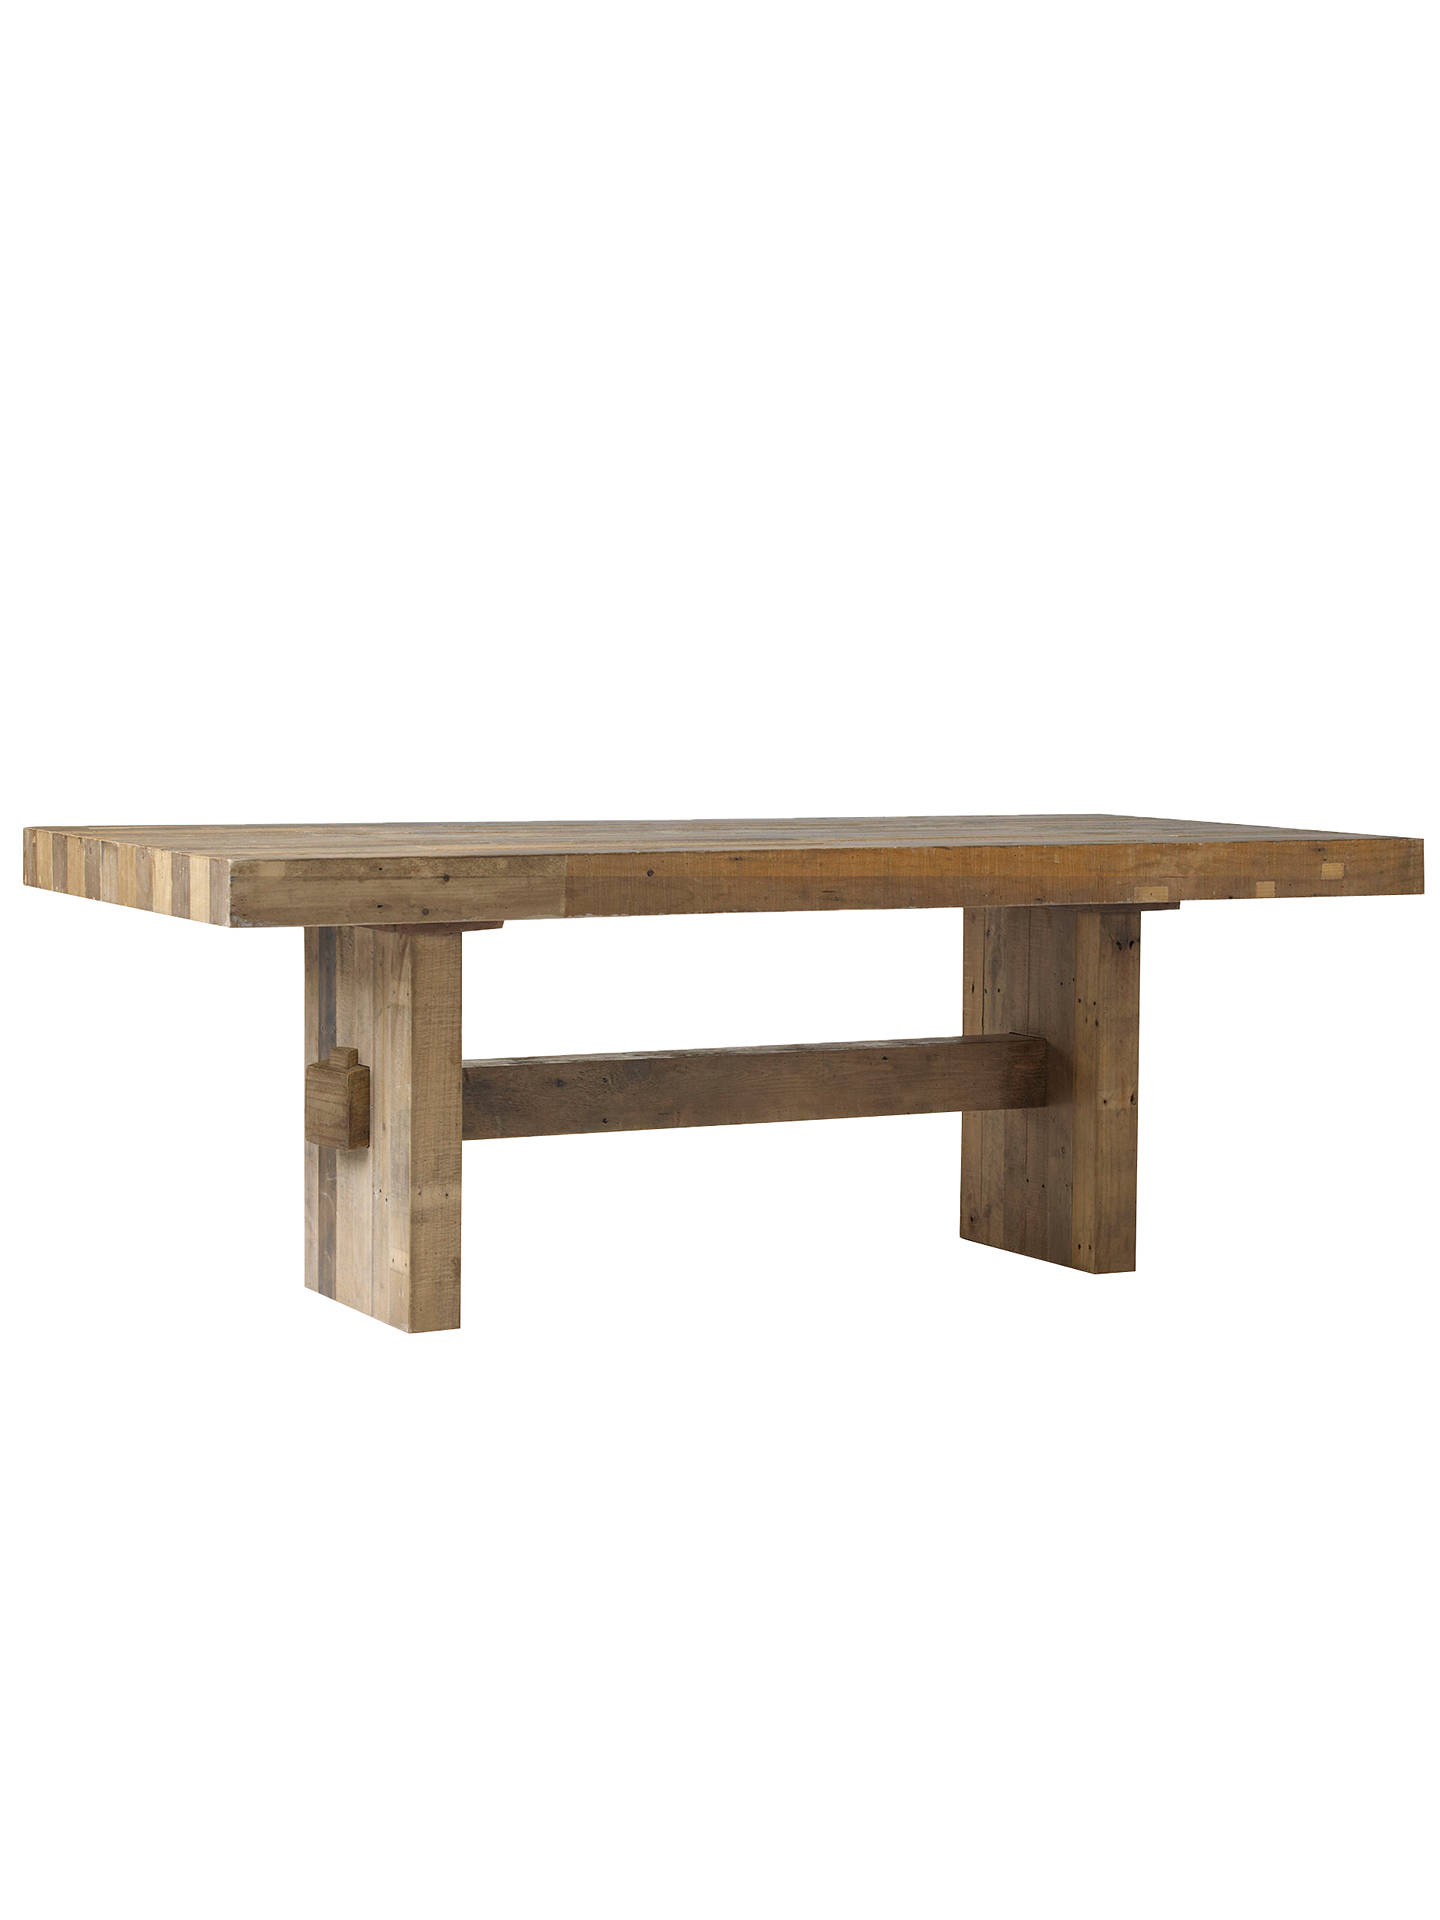 West Elm Emmerson 6 Seater Dining Table 183cm At John Lewis